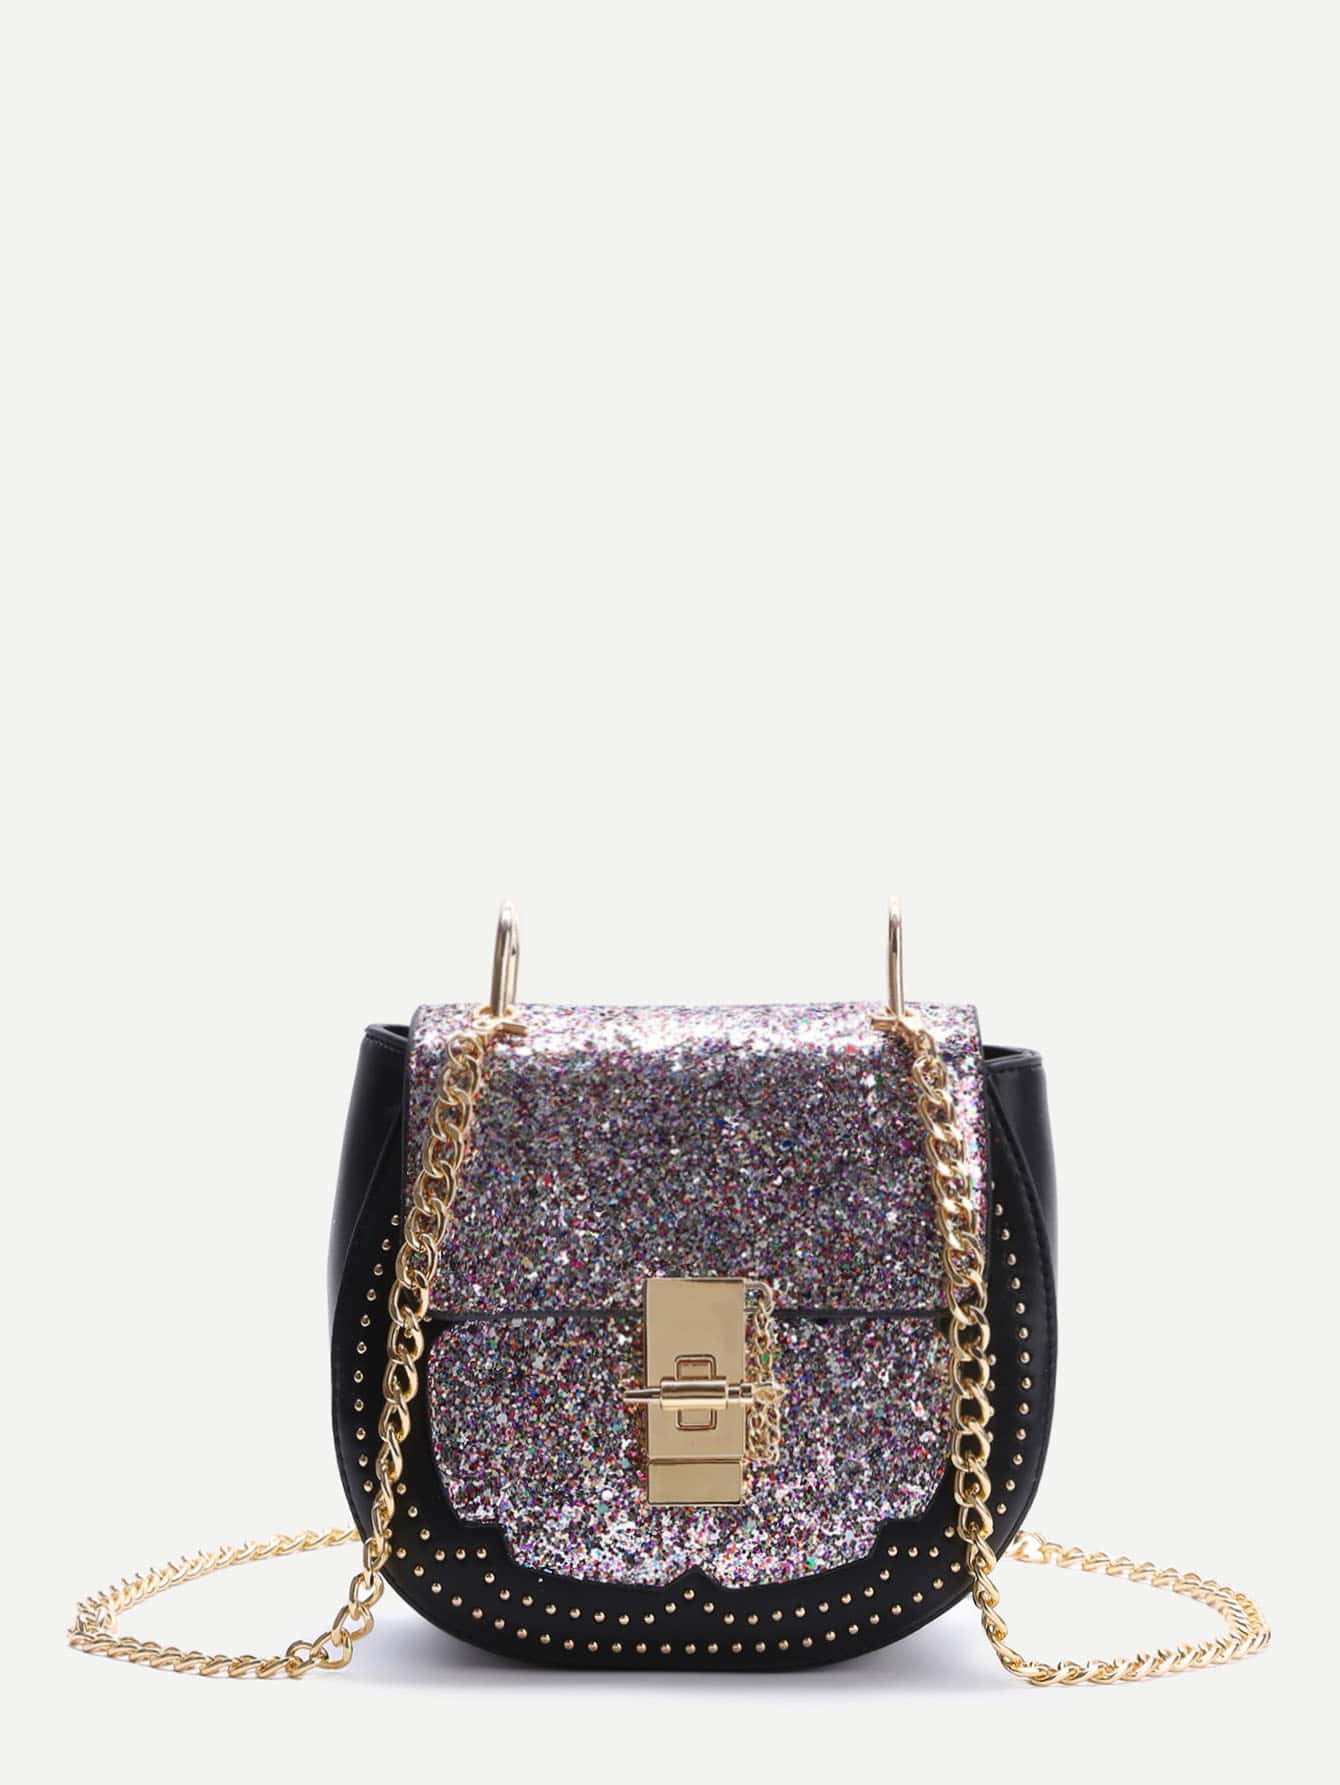 Colorful Sequin Saddle Bag With Chain bag170306903